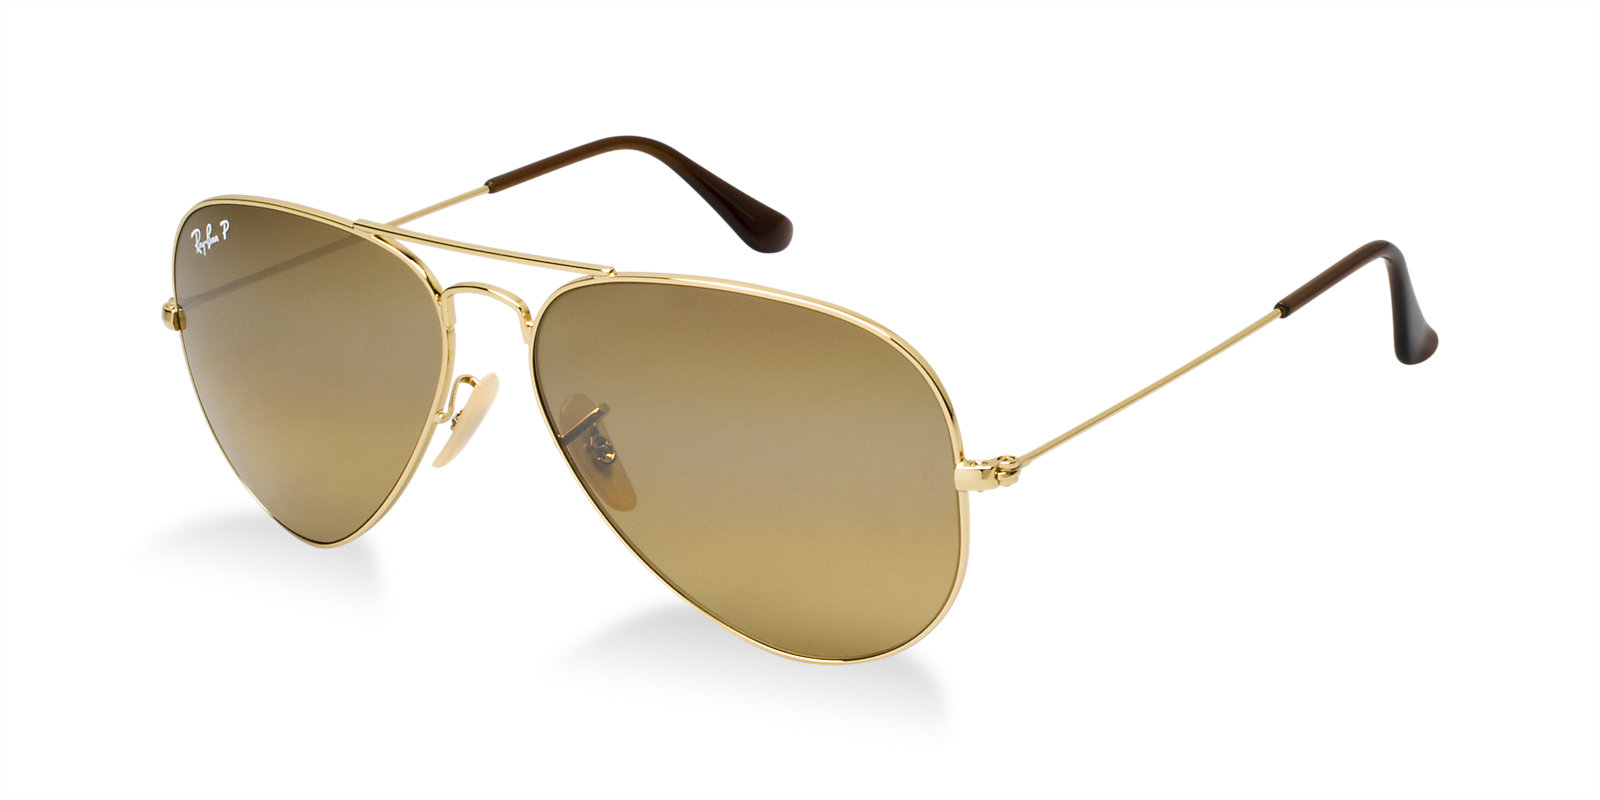 RAY-BAN RB3025 001/57 GOLD POLARIZED AVIATOR SUNGLASSES ...